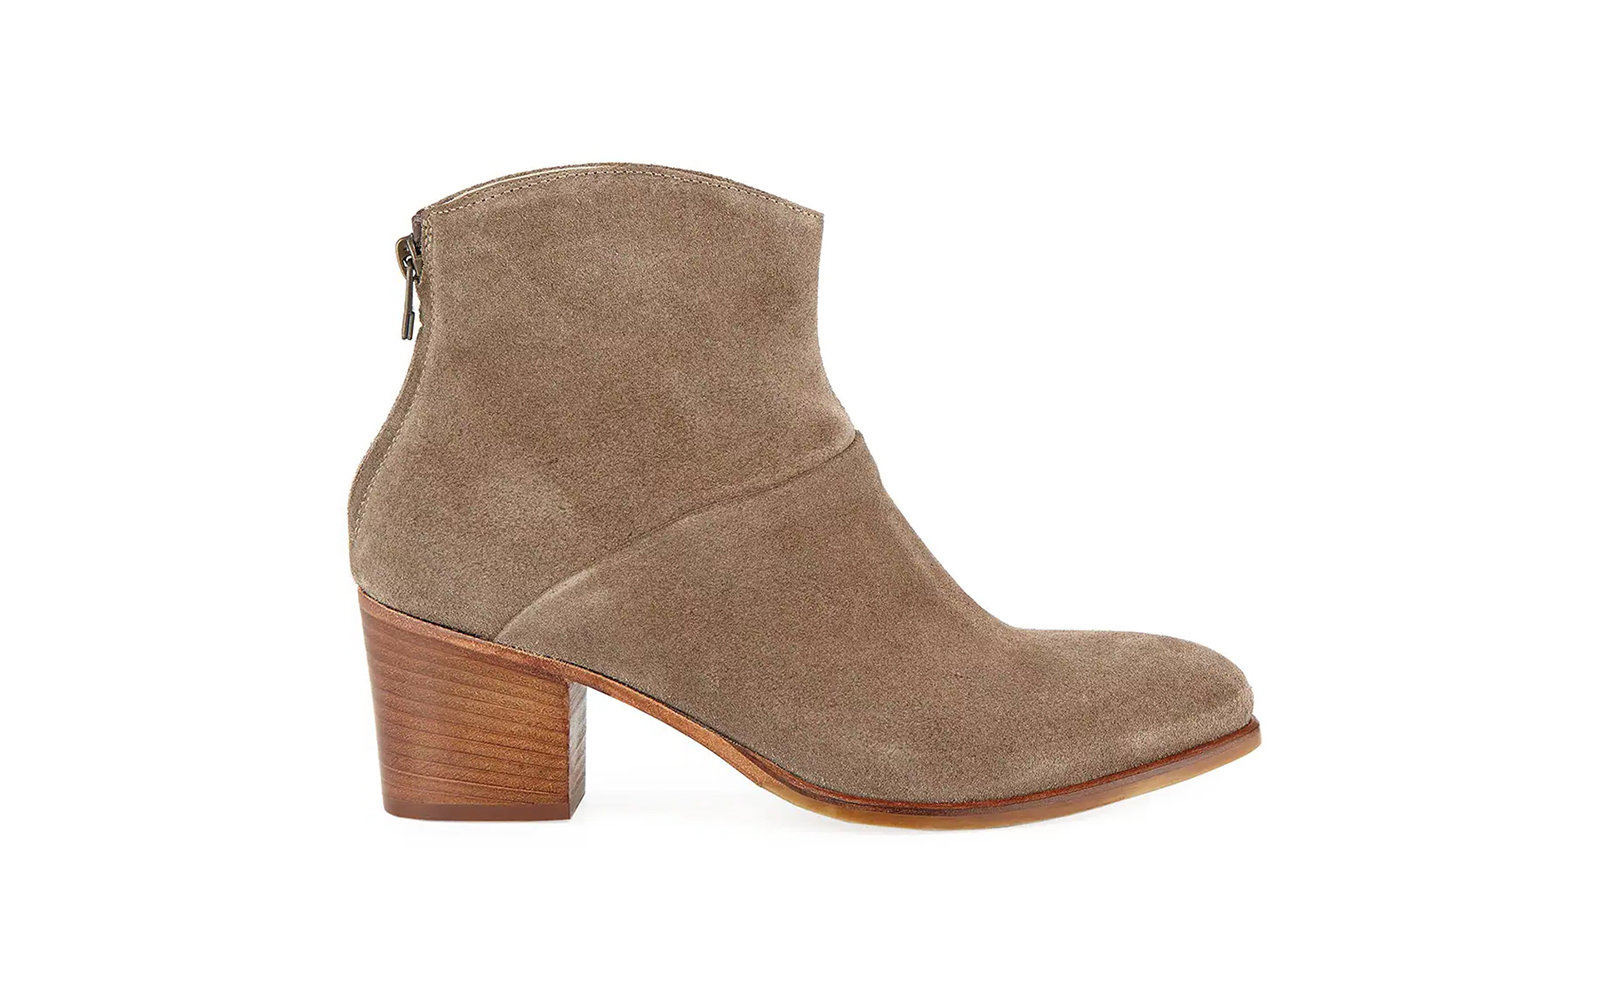 Best Ankle Boots: Italeau Daniela Waterproof Suede Ankle Booties